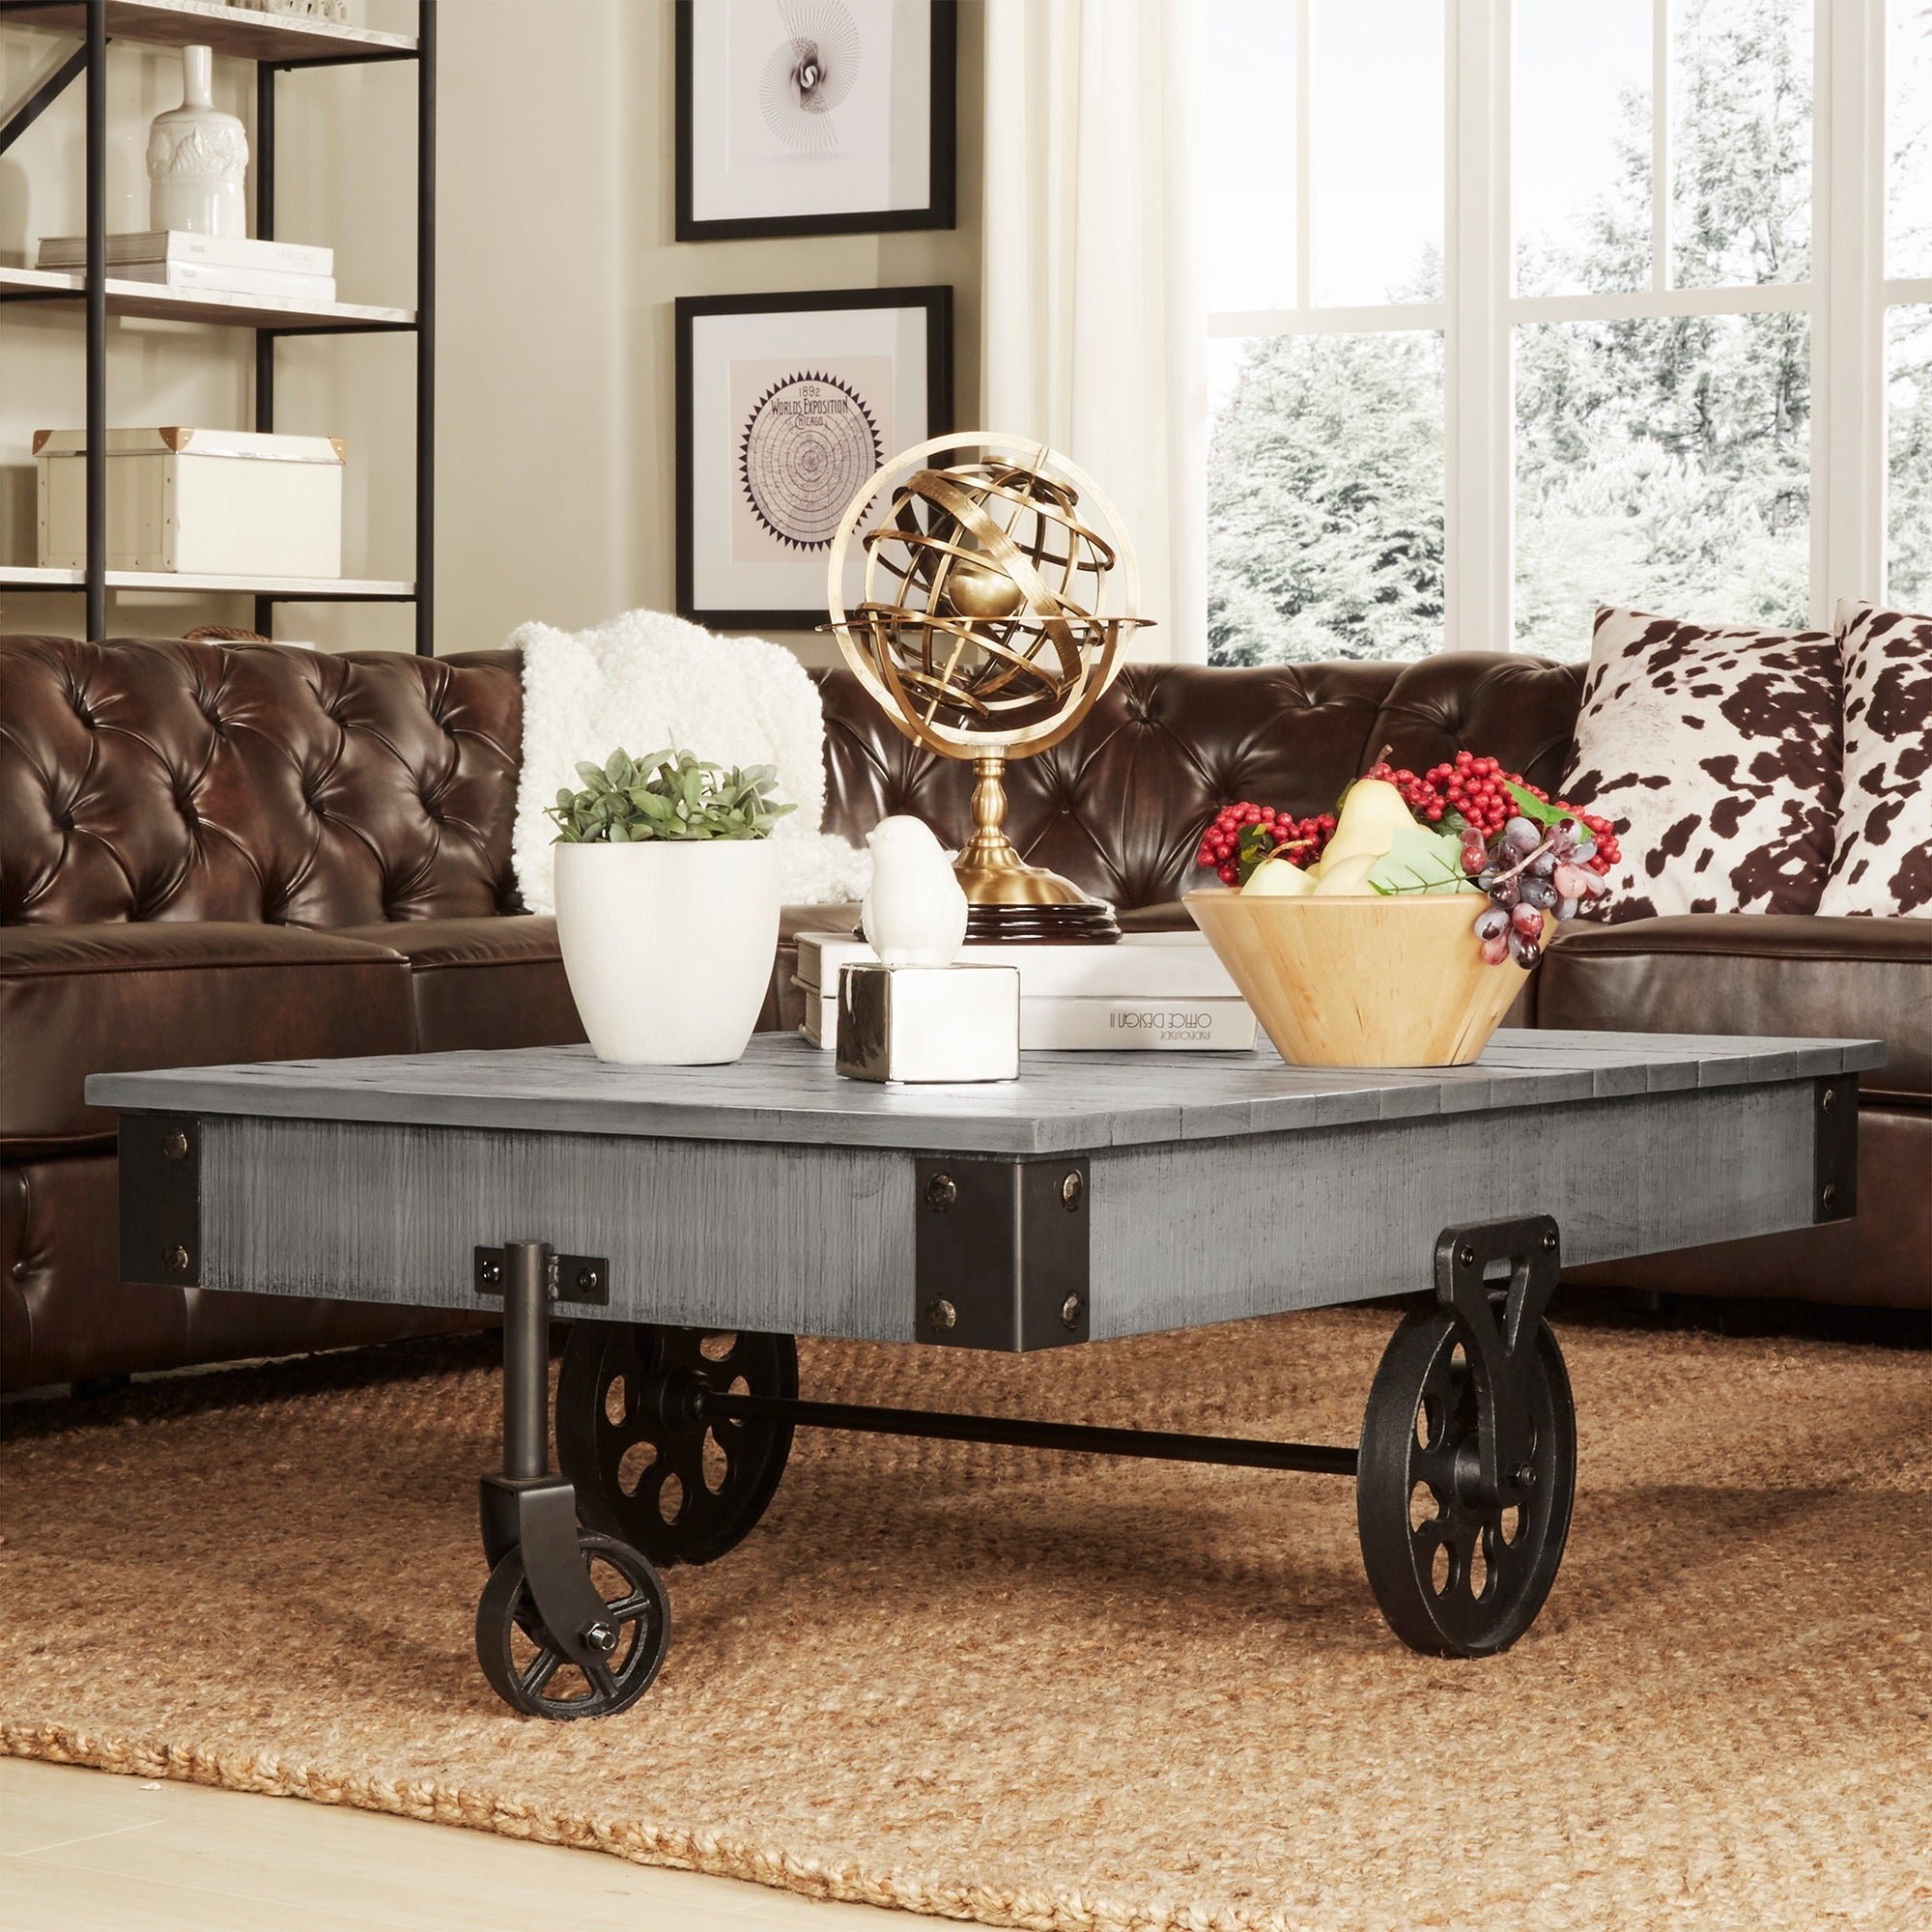 Myra Vintage Industrial Modern Rustic 47 inch Coffee Table by